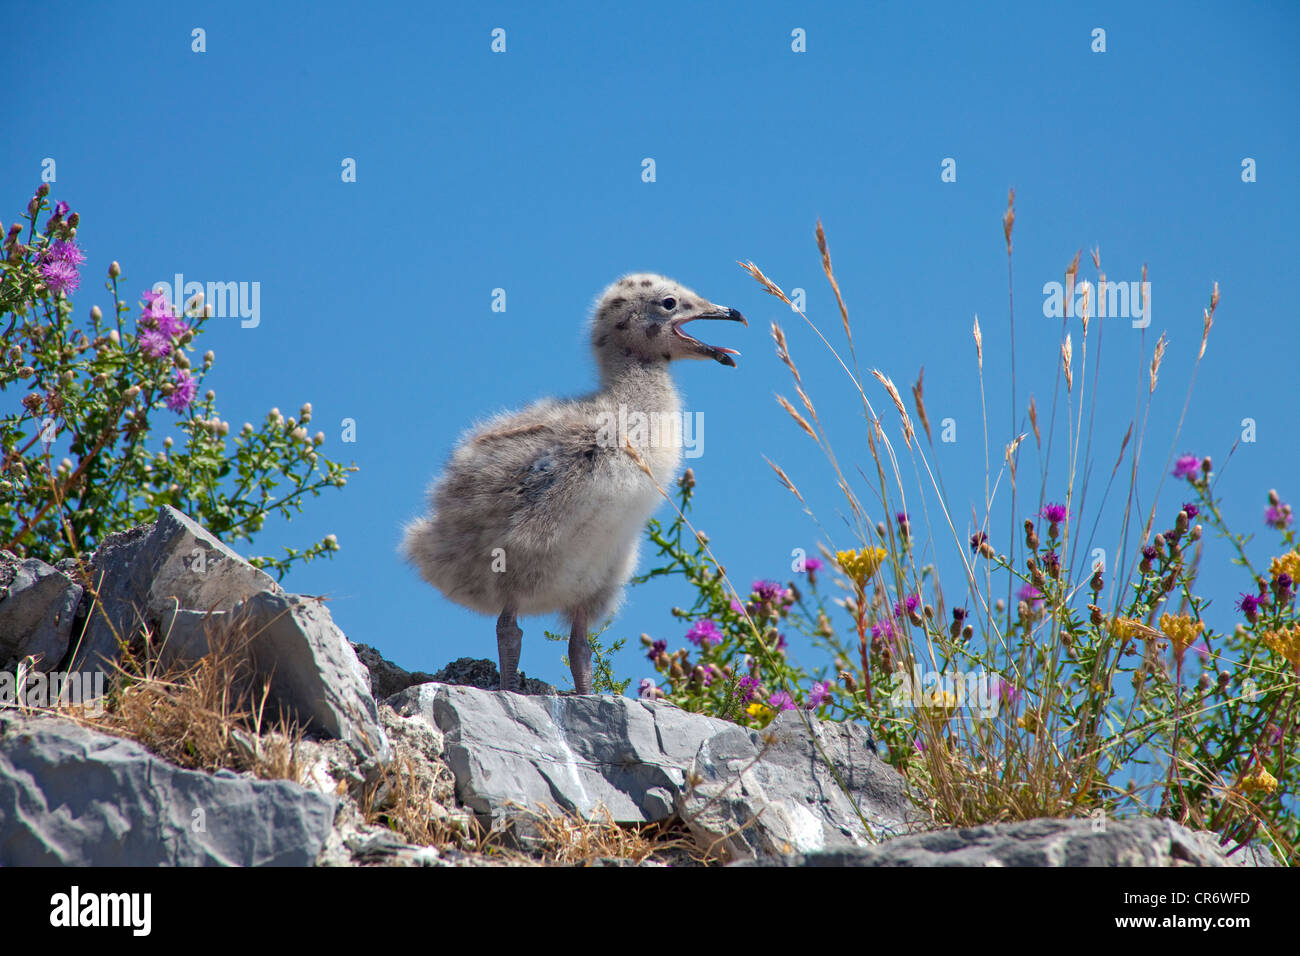 Great black-backed gull (Larus marinus), chick sitting on a ruined fort, fishing village of , La Spezia province - Stock Image